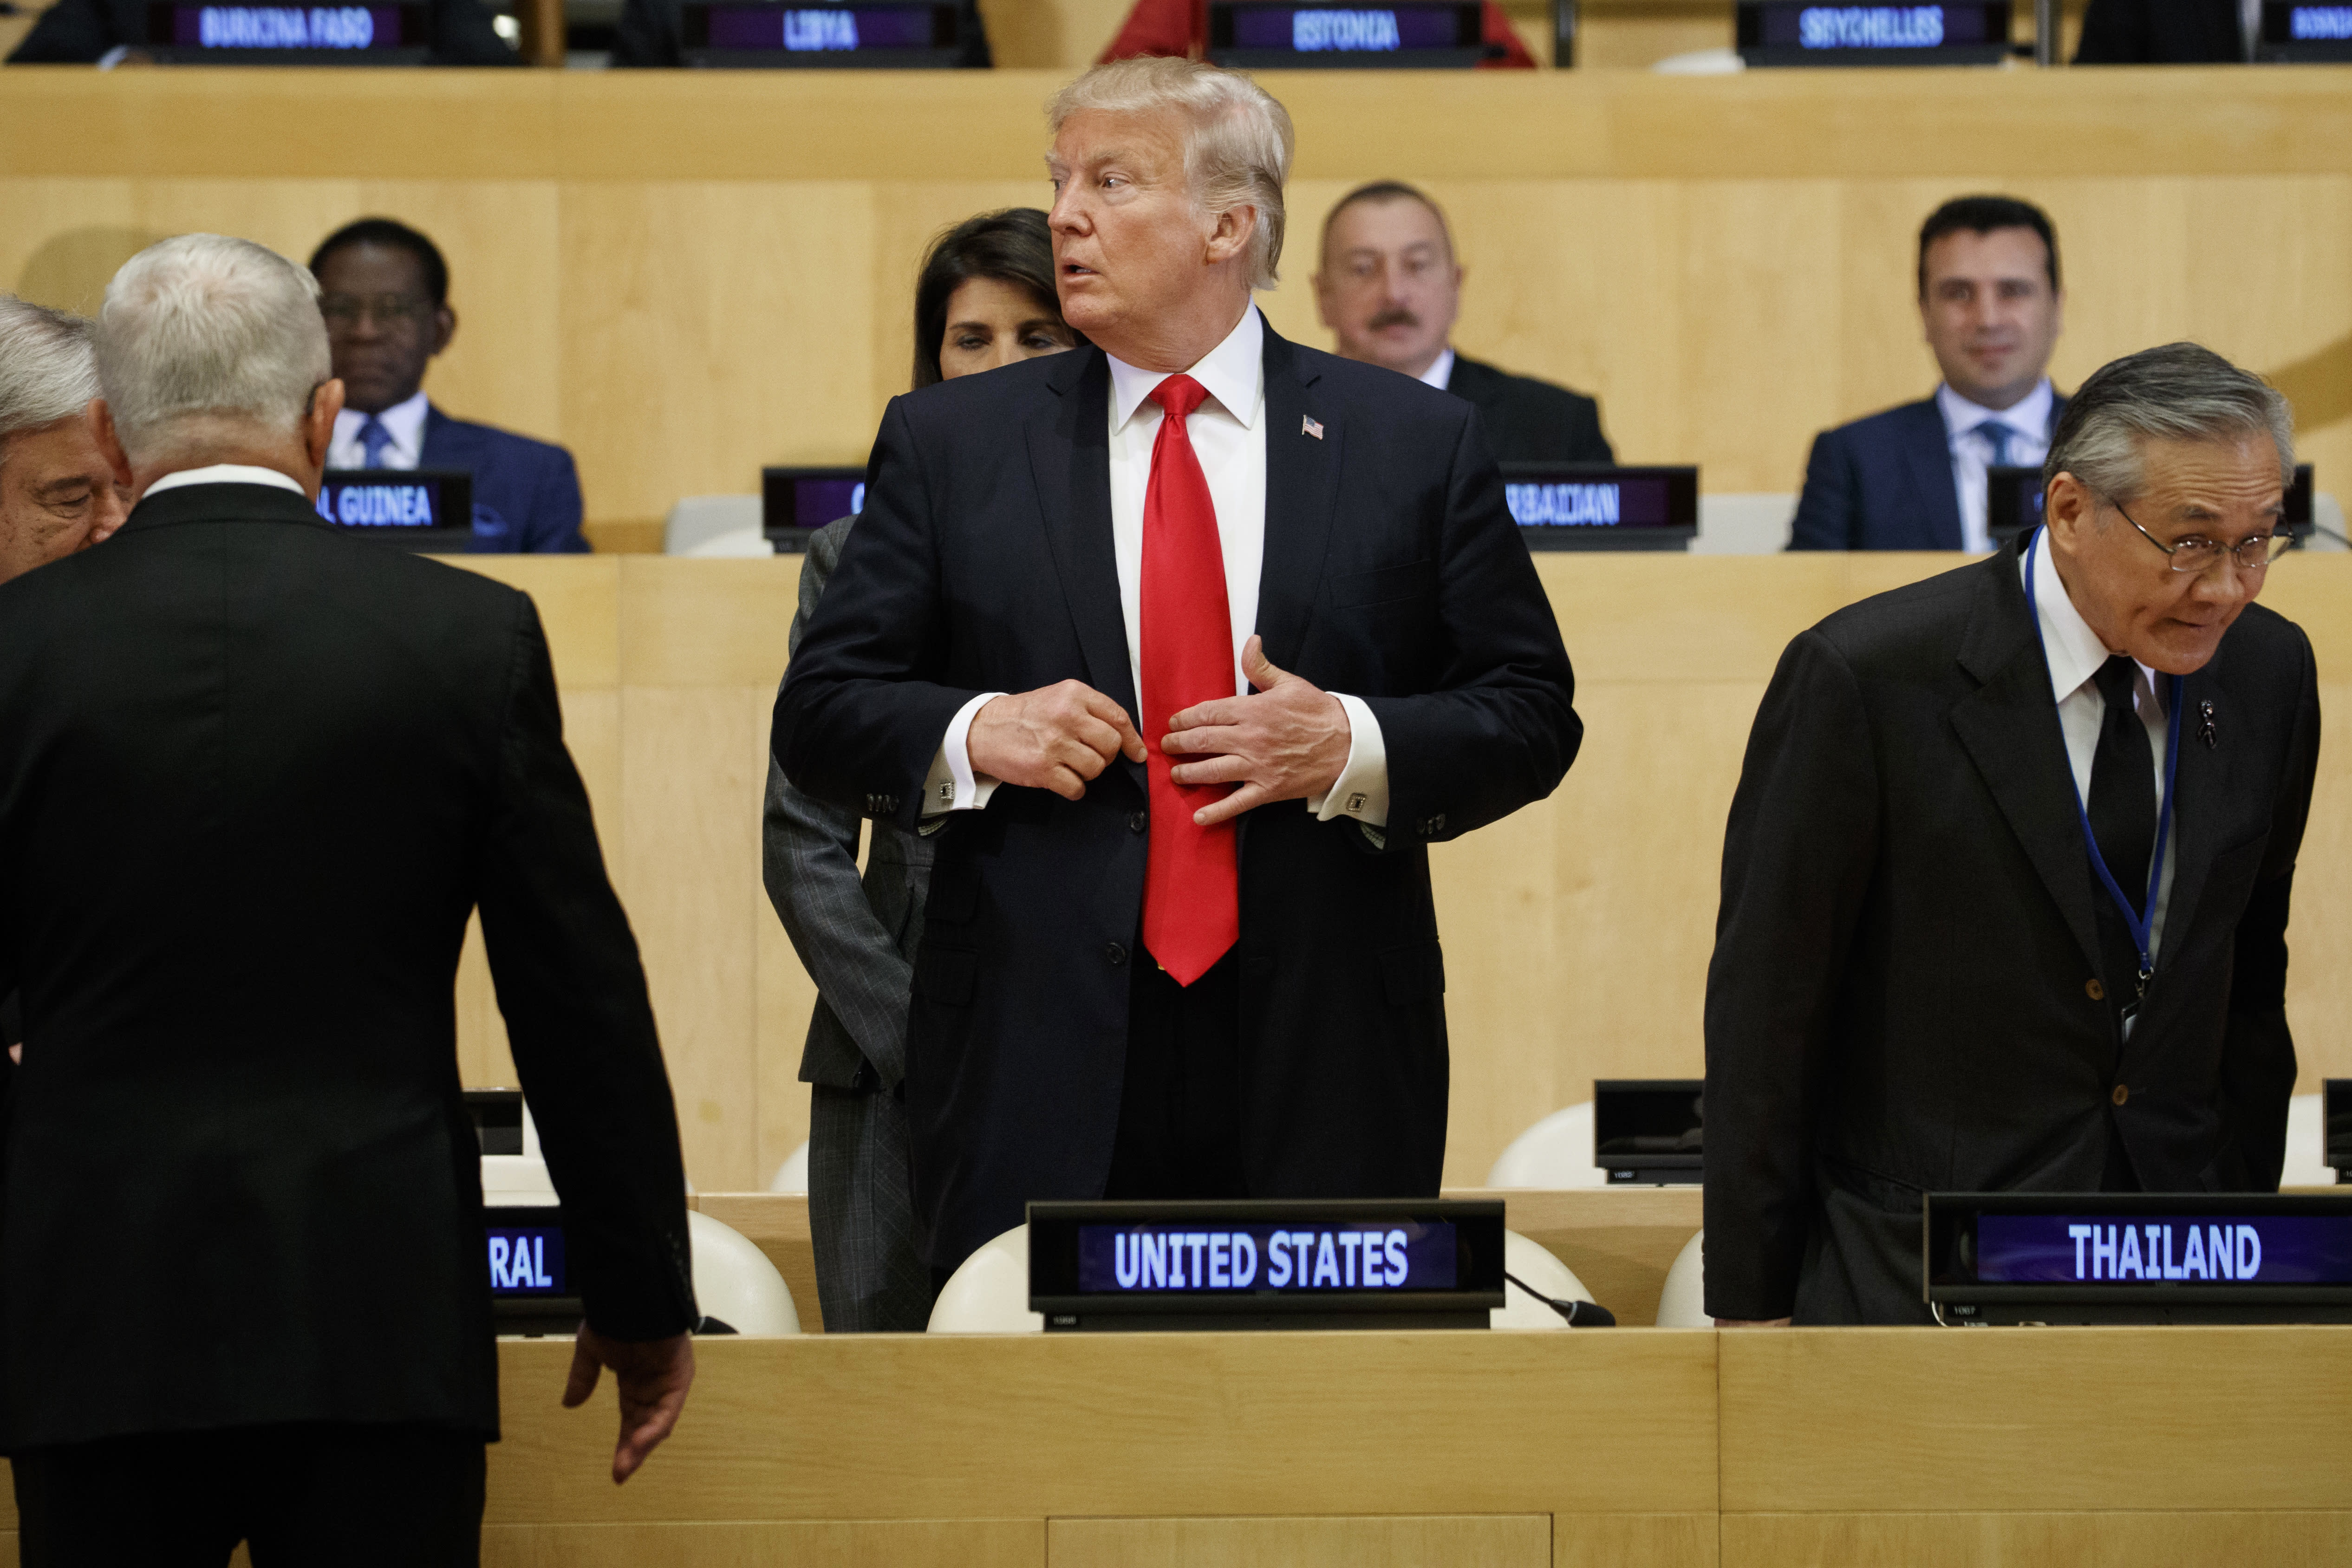 """<p>President Donald Trump arrives for the """"Reforming the United Nations: Management, Security, and Development"""" meeting during the United Nations General Assembly, Monday, Sept. 18, 2017, in New York. (Photo: Evan Vucci/AP) </p>"""